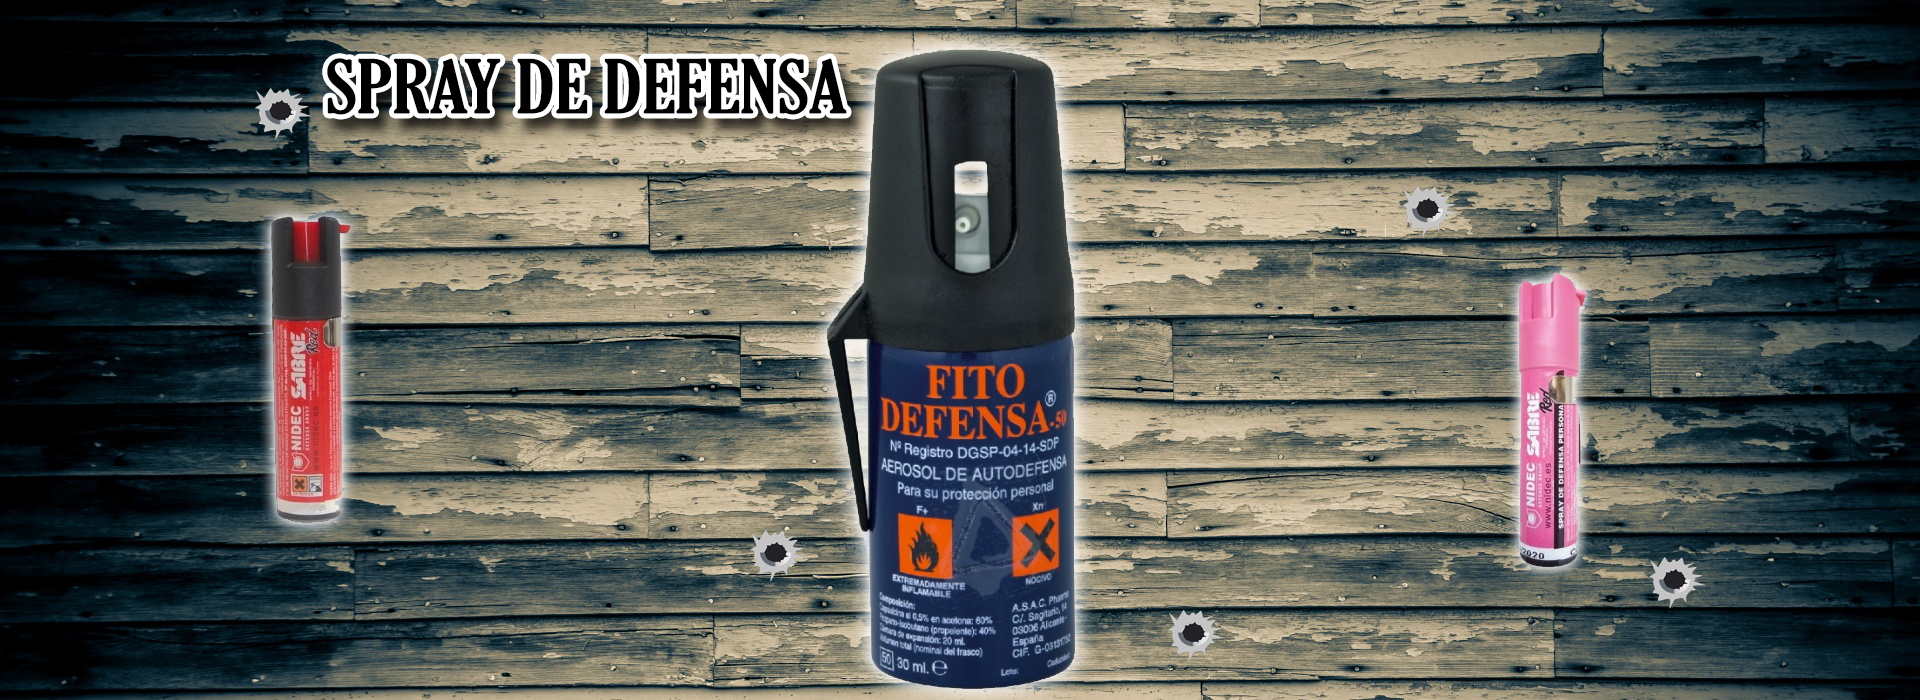 Spray de Defensa